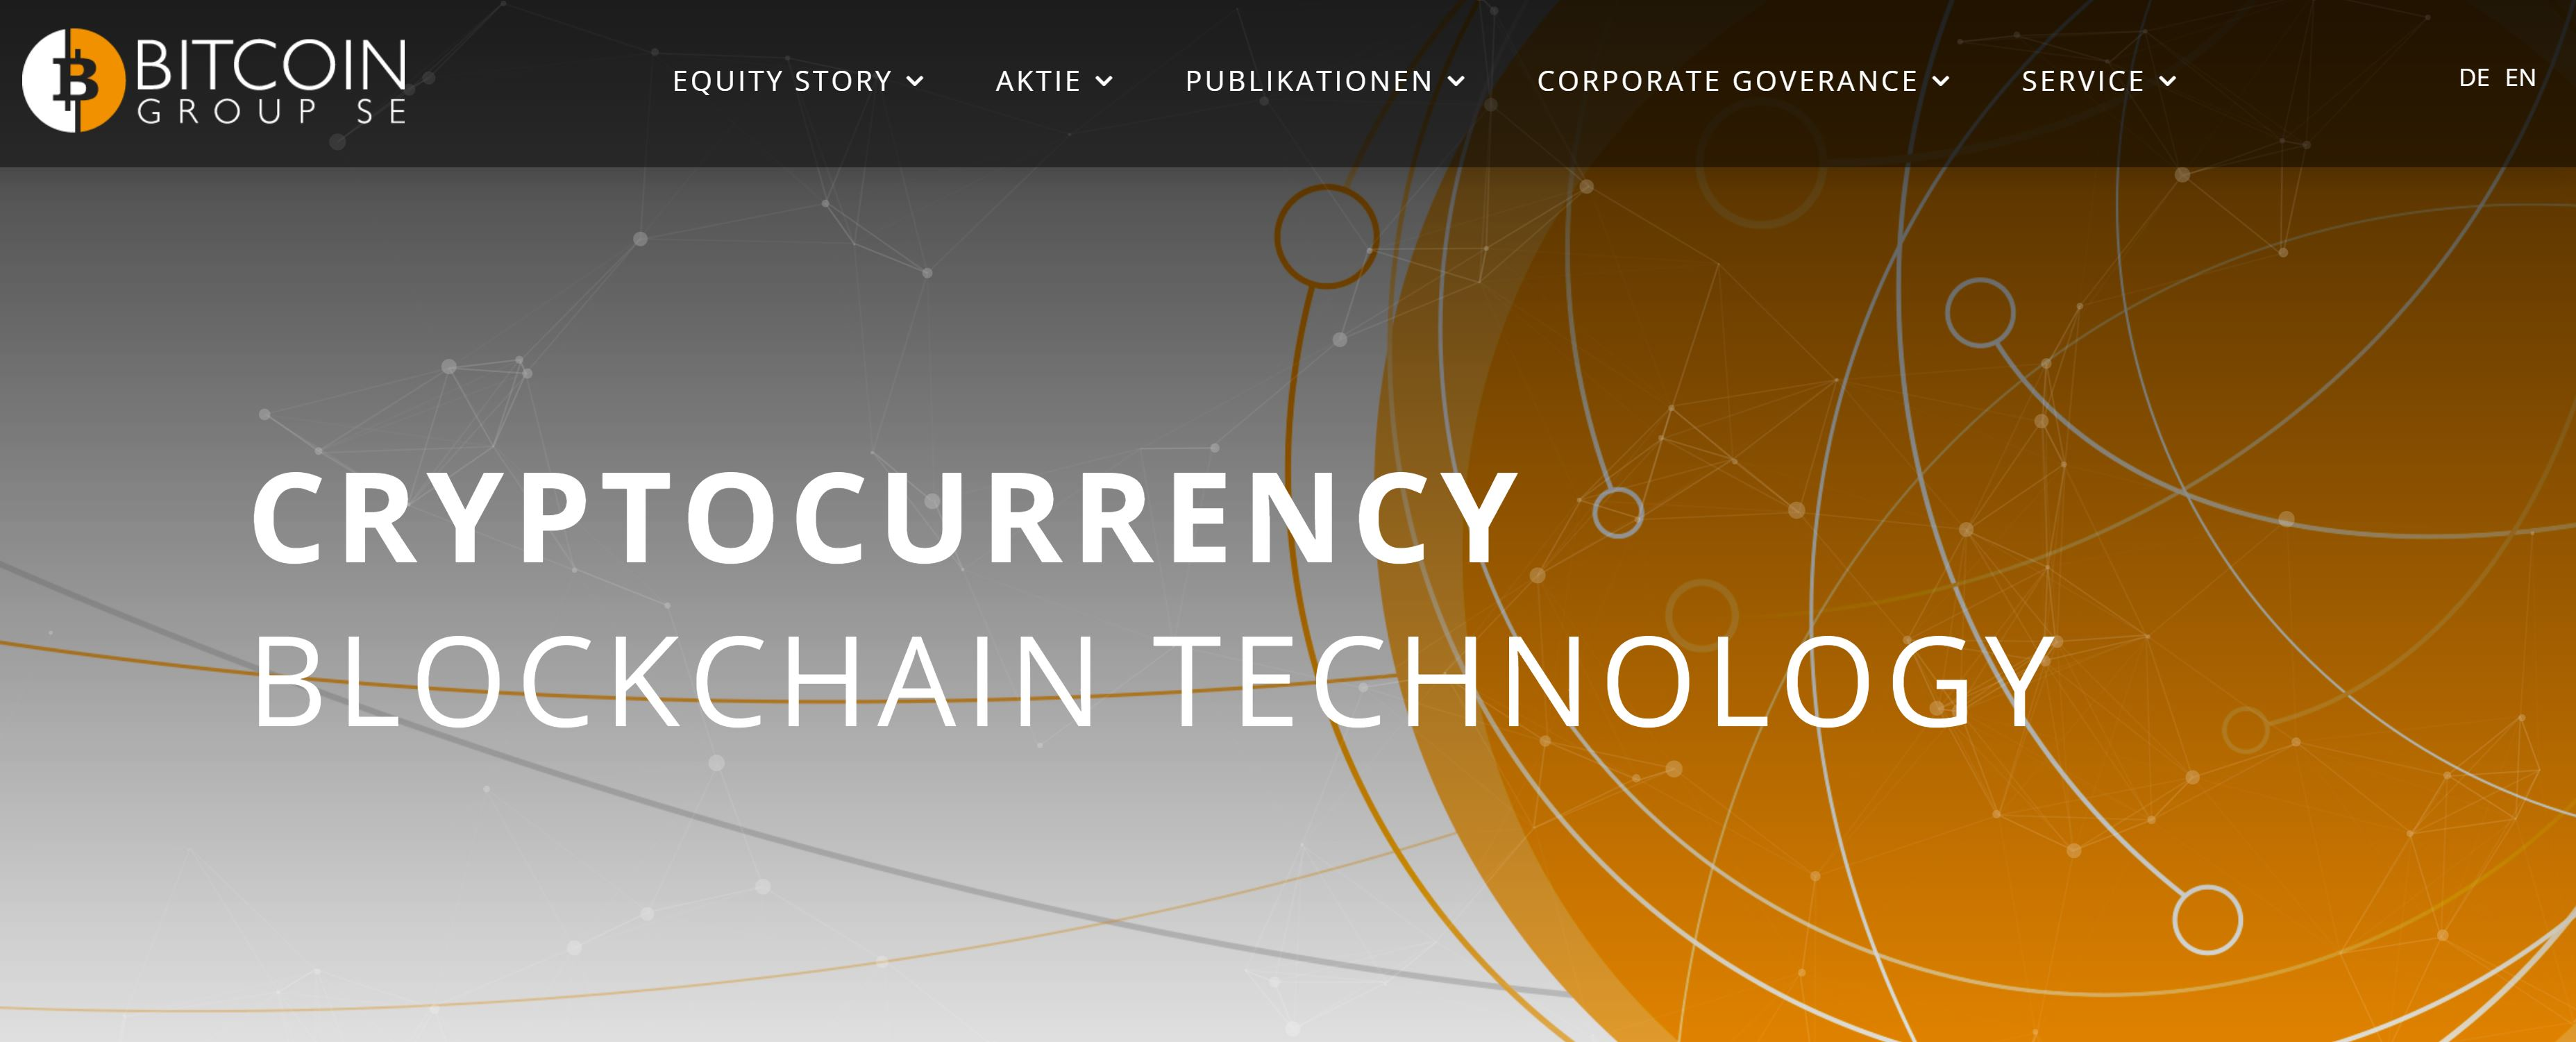 Bitcoin.de belongs to the Bitcoin Group - Homepage